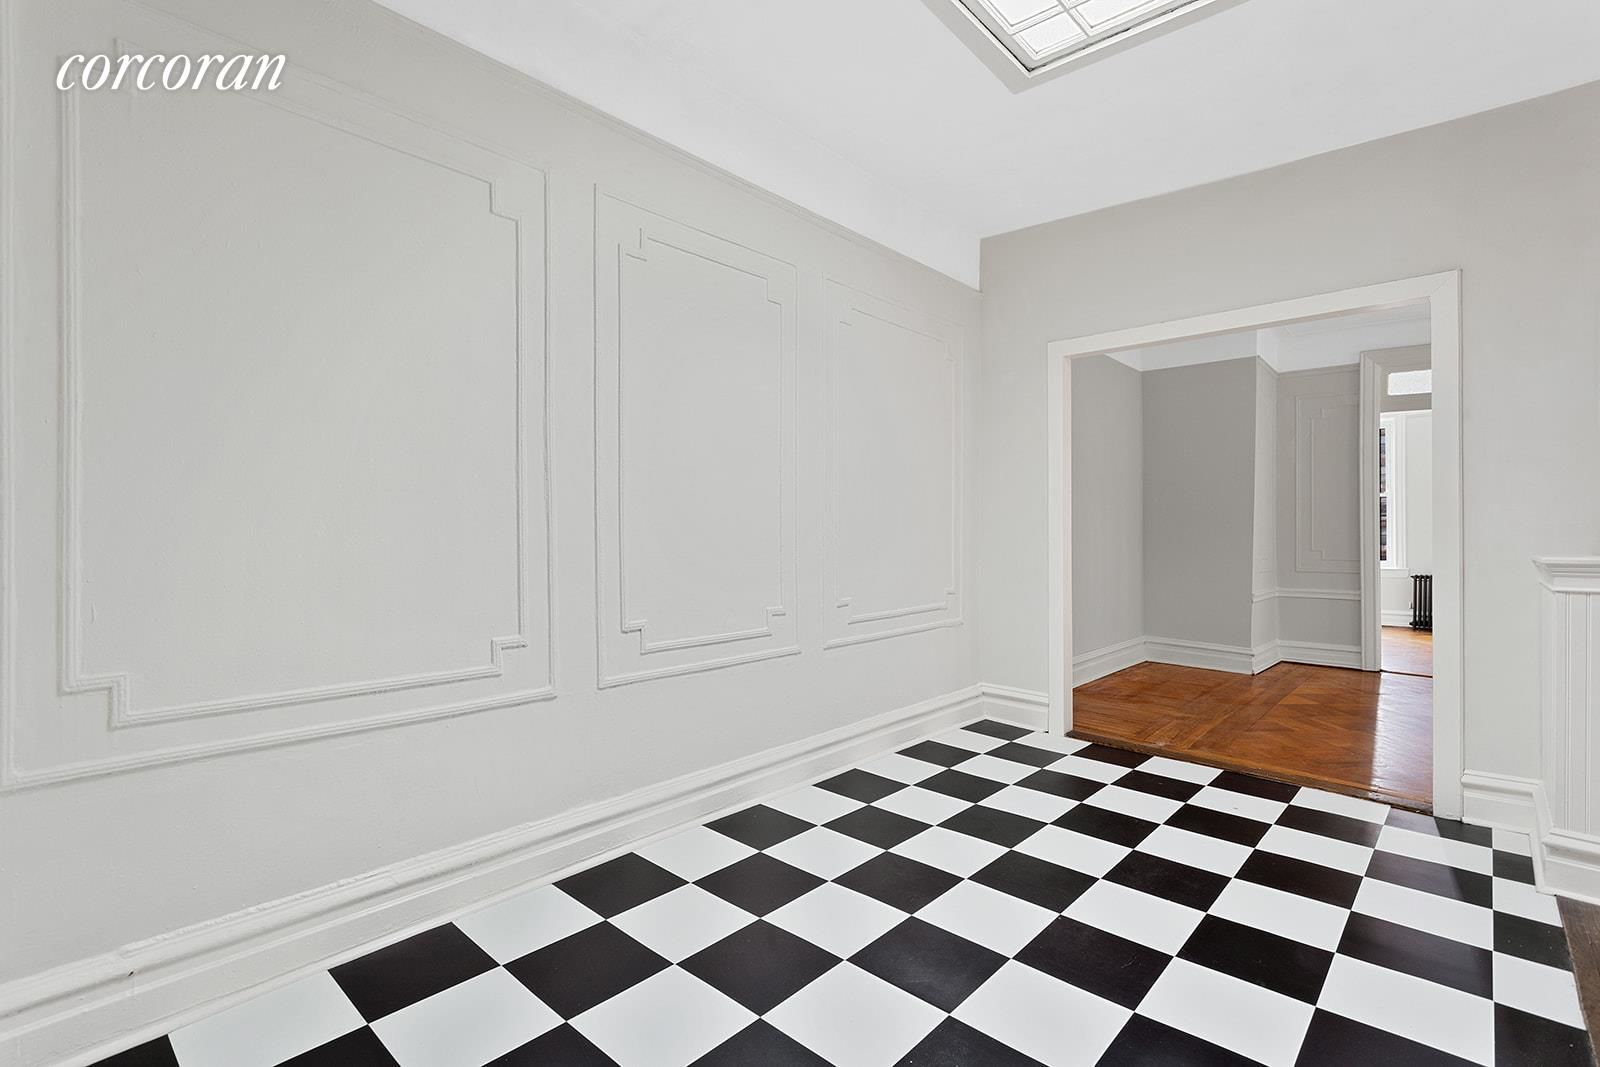 566 Osborn St Photo 5 - NYC-Real-Estate-681128